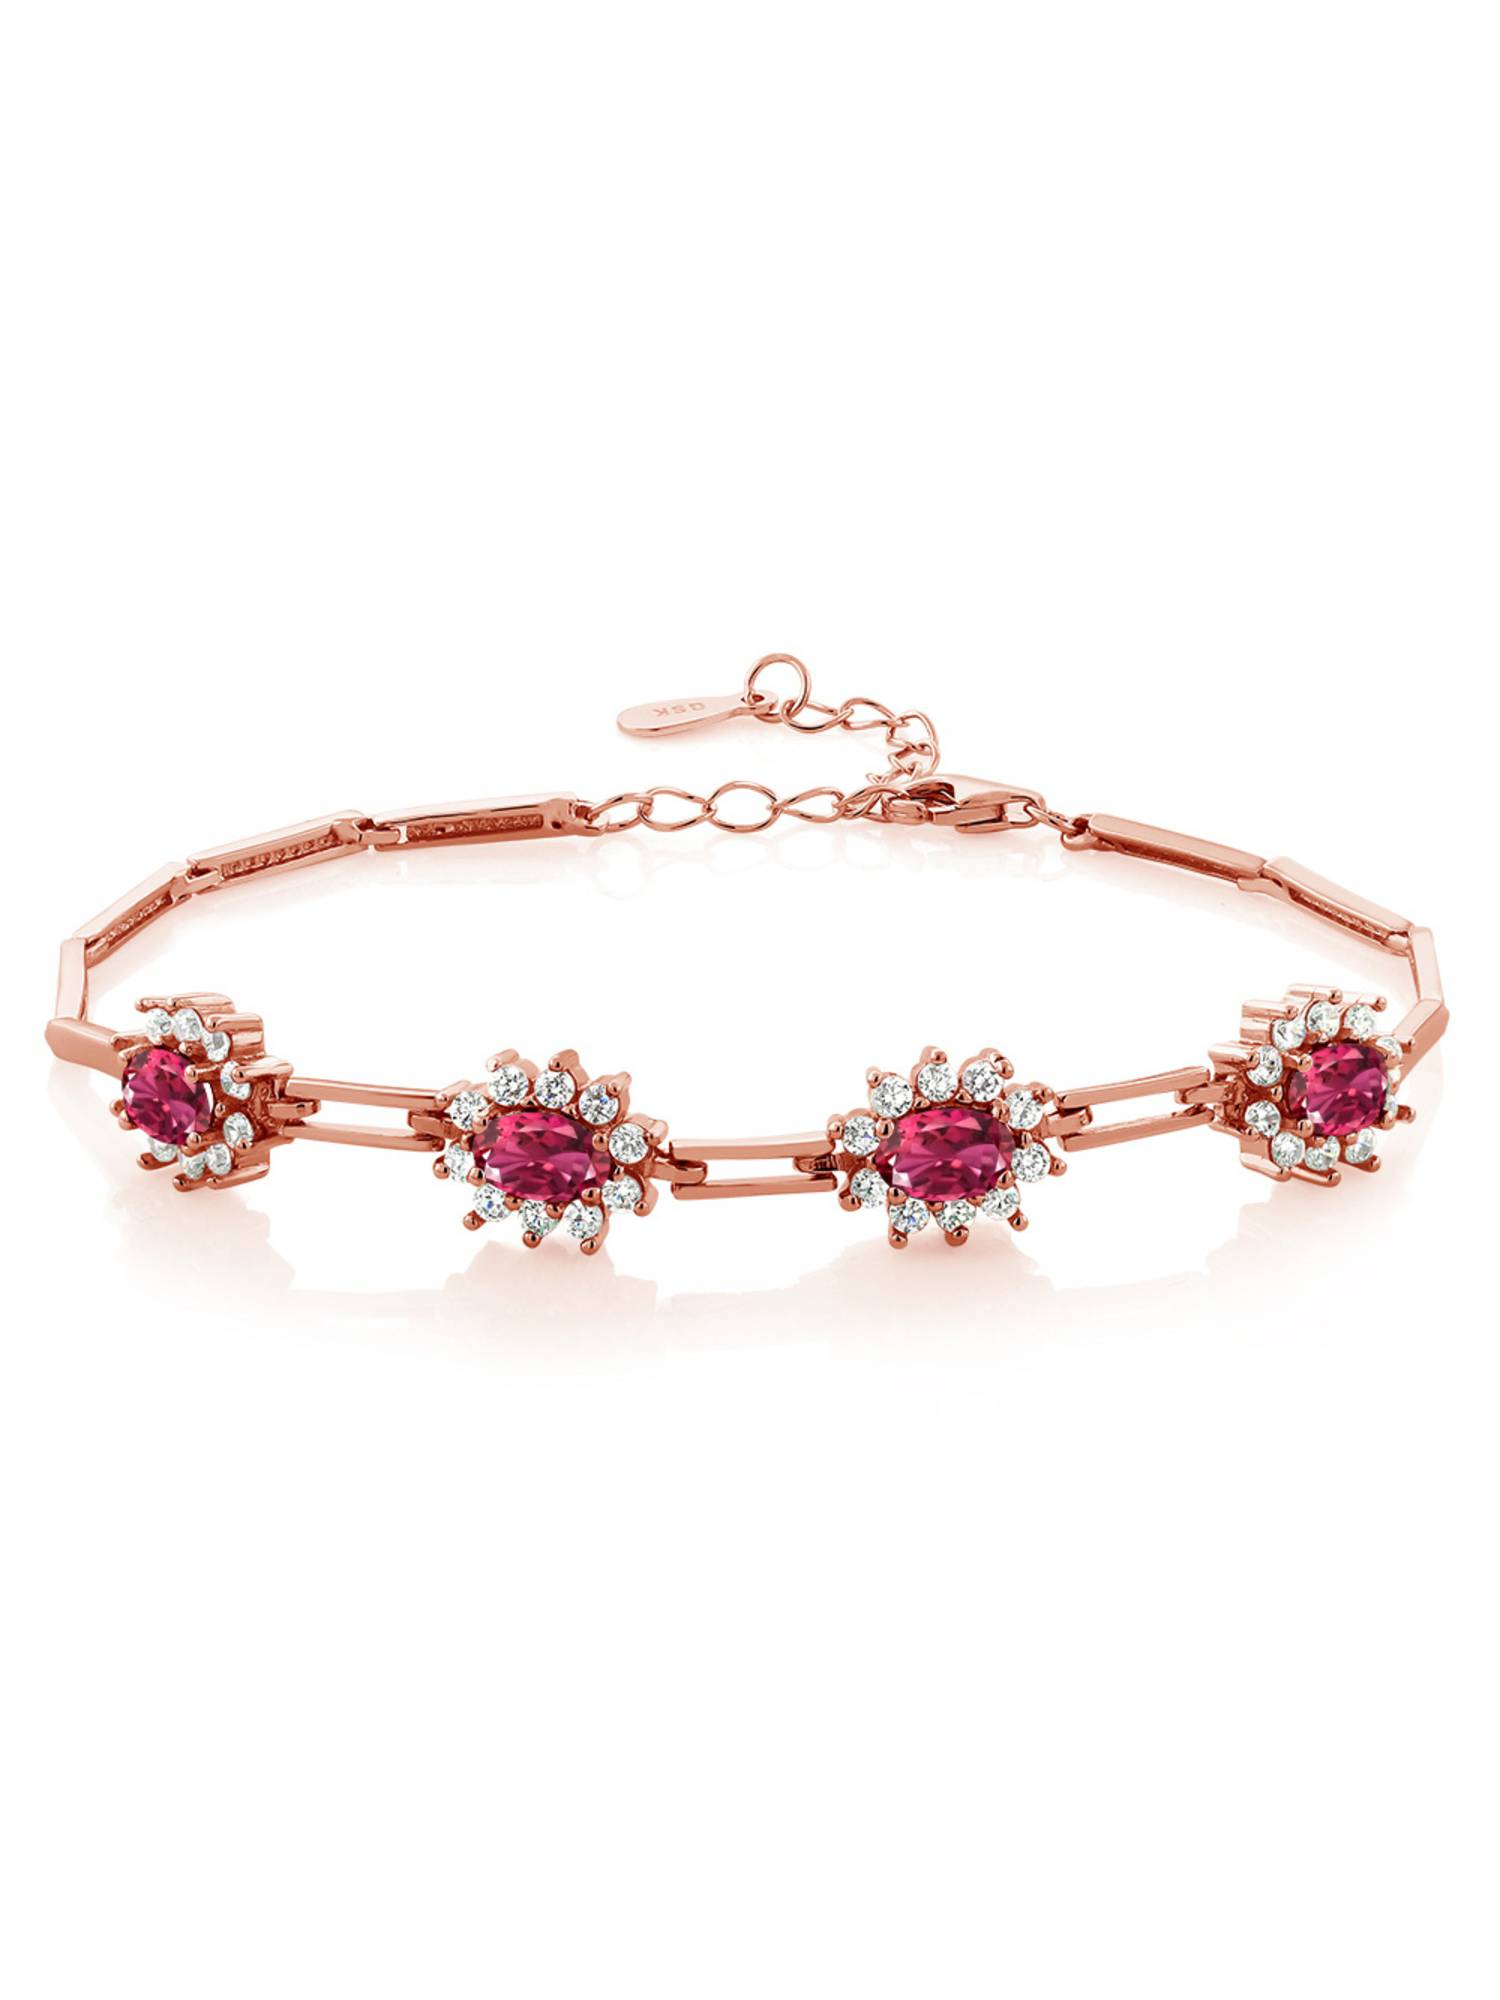 4.00 Ct Oval Pink Tourmaline 18K Rose Gold Plated Silver Bracelet by